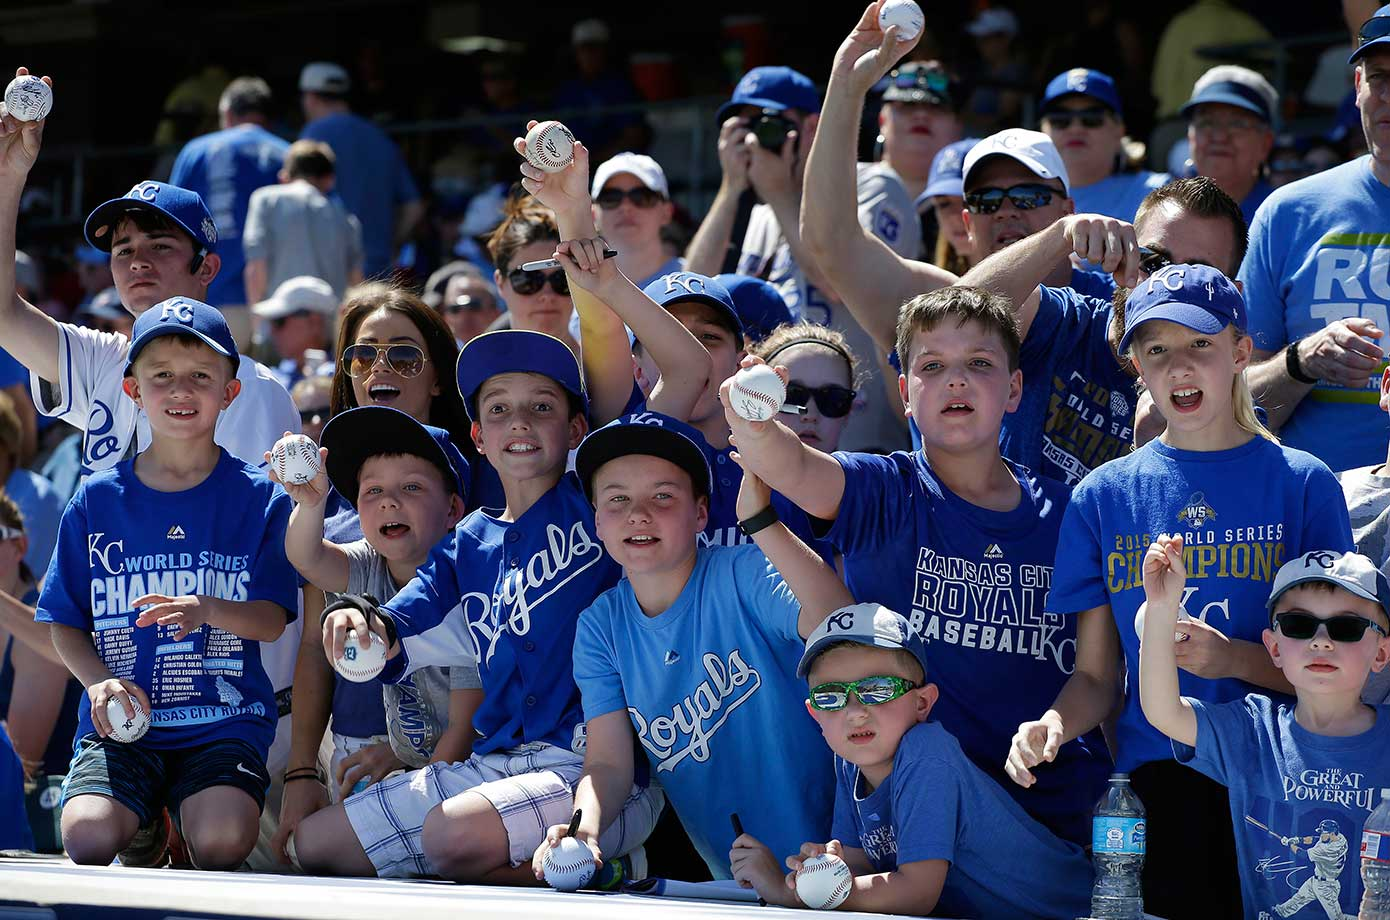 Fans wait for autographs before a spring training baseball game between the Kansas City Royals and the Chicago Cubs.